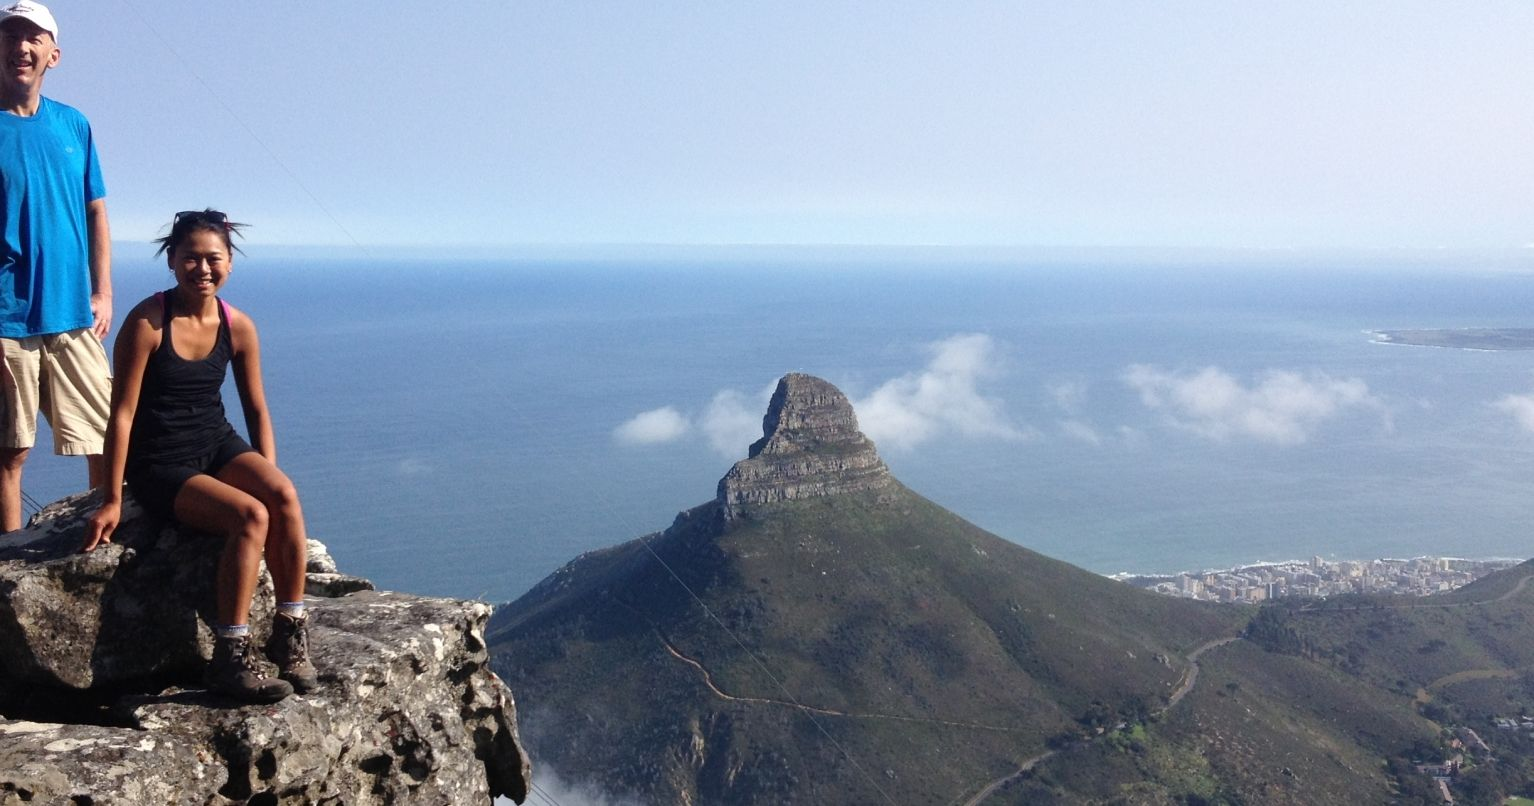 Table Mountain Hike-India Venster Route Cape Town Tinggly Experience Gifts